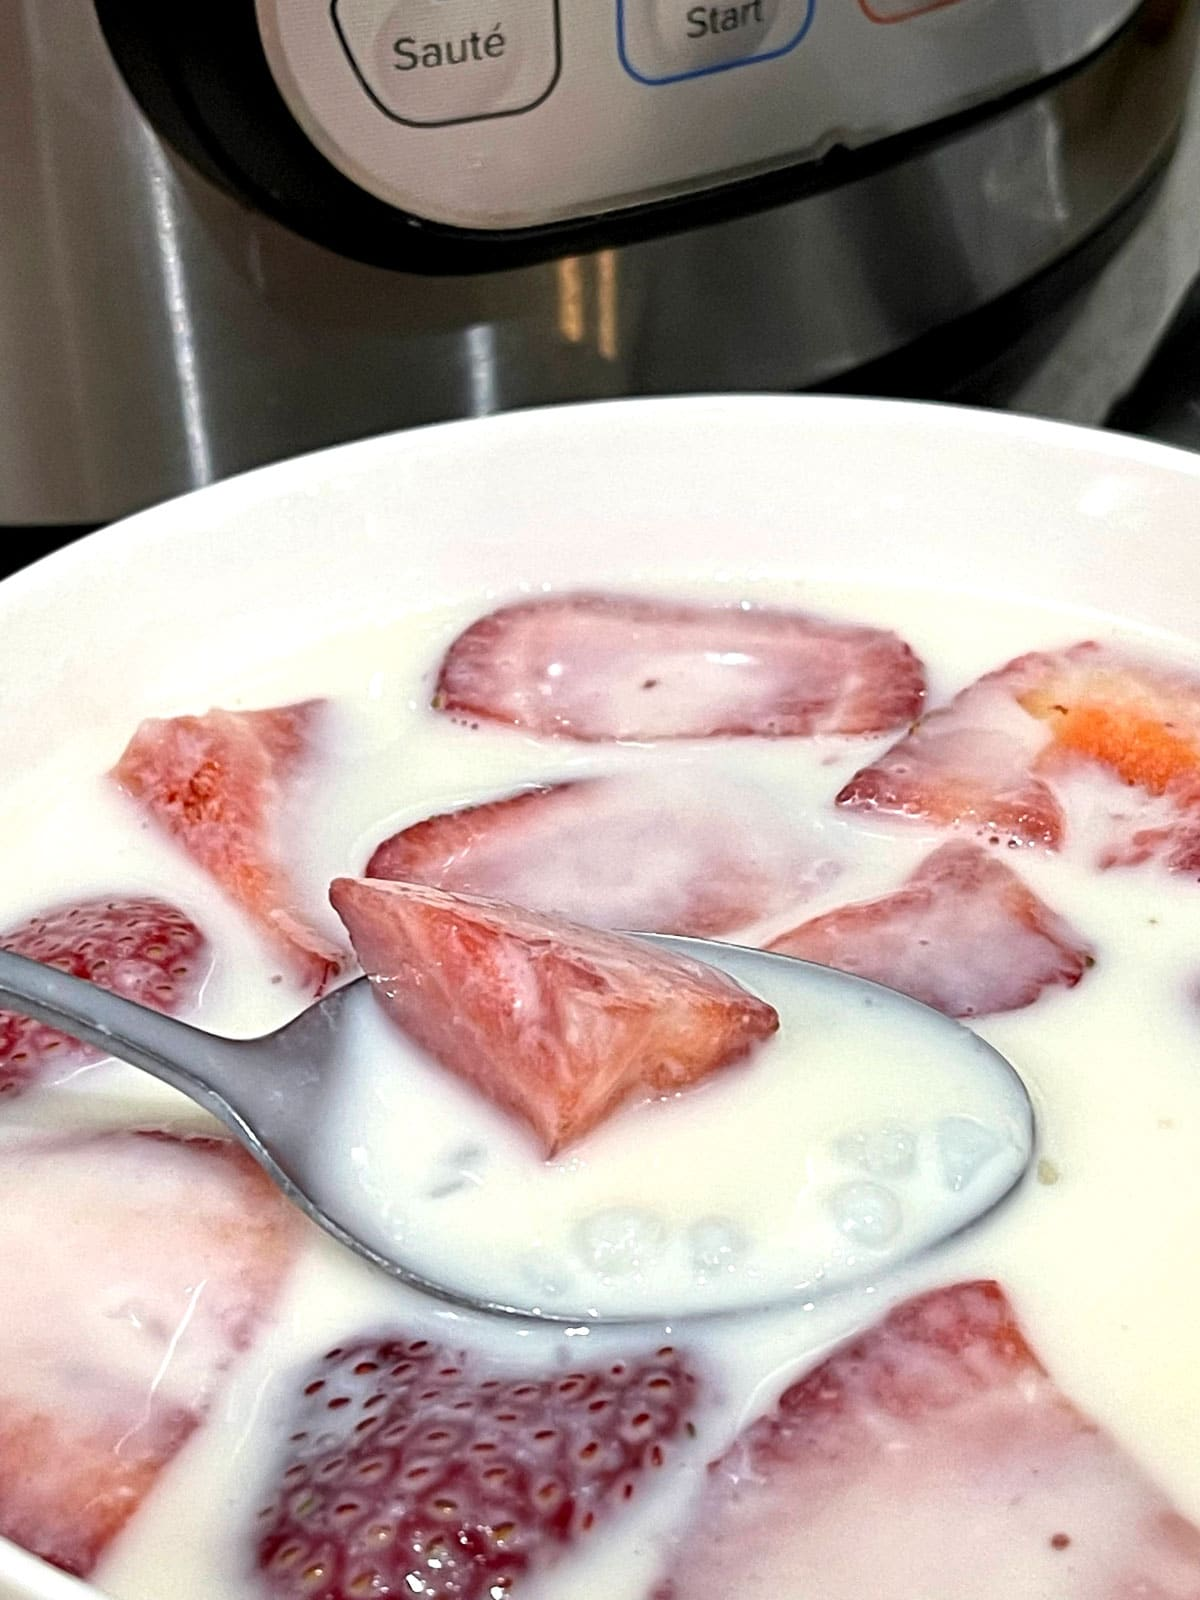 tapioca pudding with added strawberries